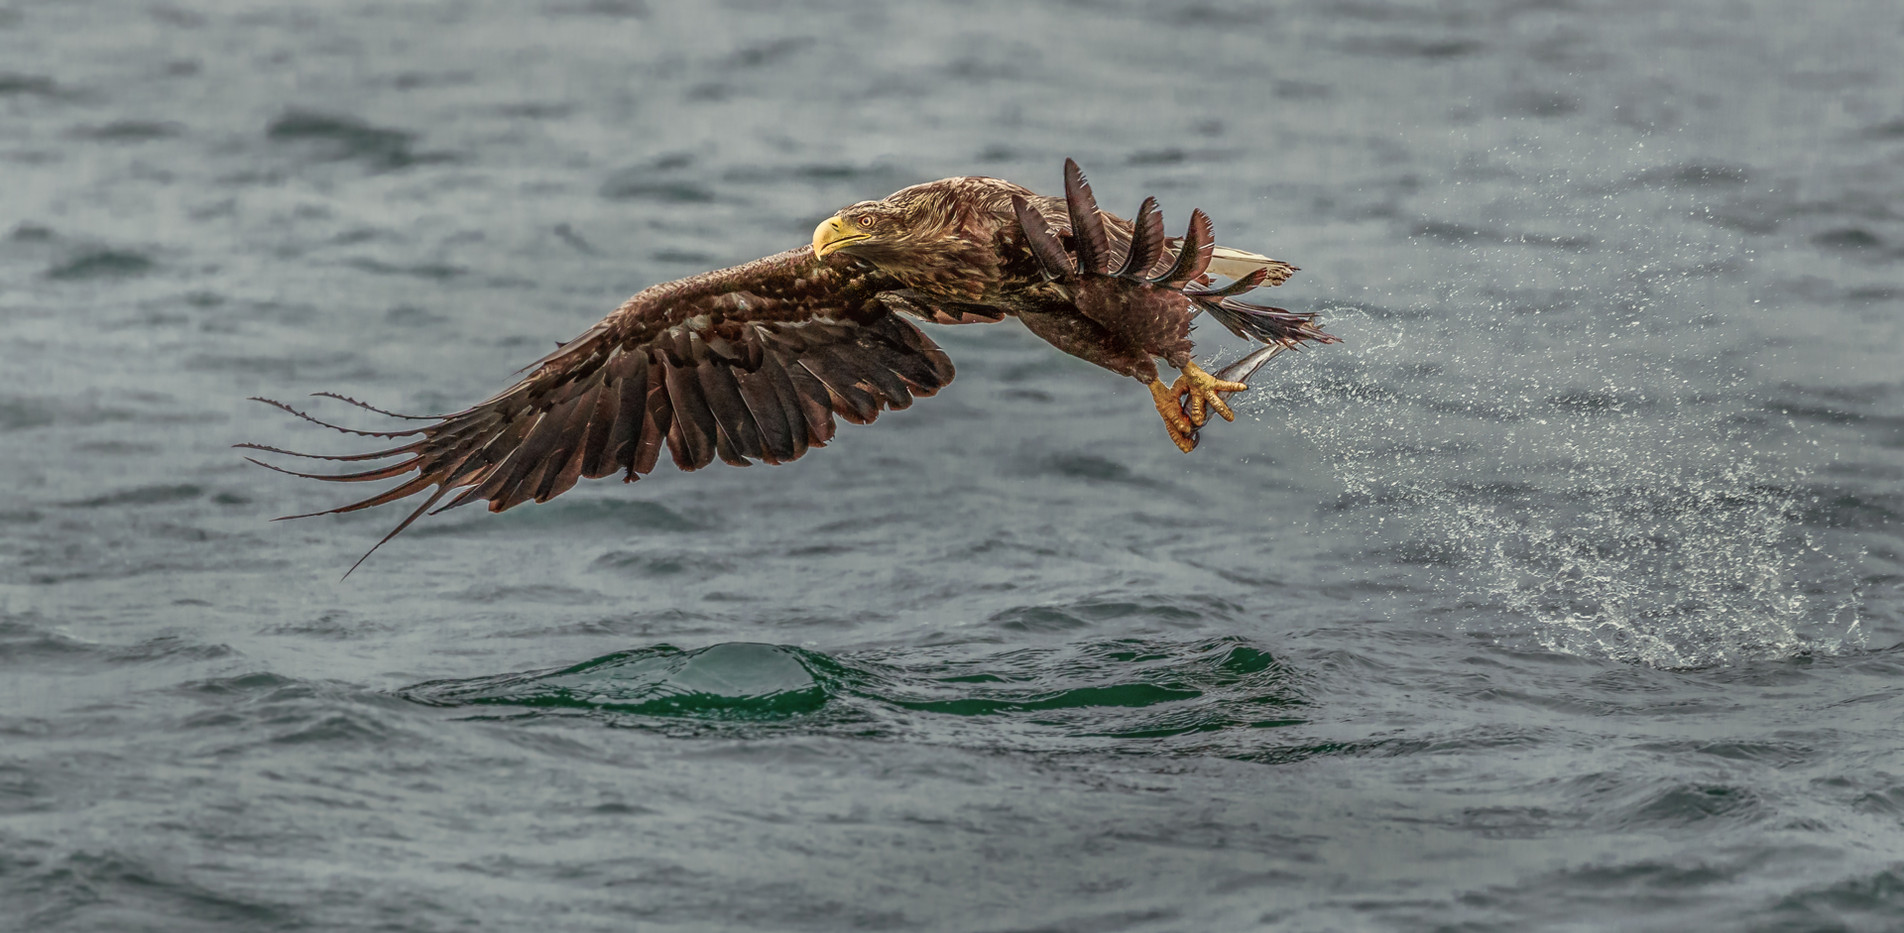 19 WHITE TAILED EAGLE WITH CATCH by David Godfrey